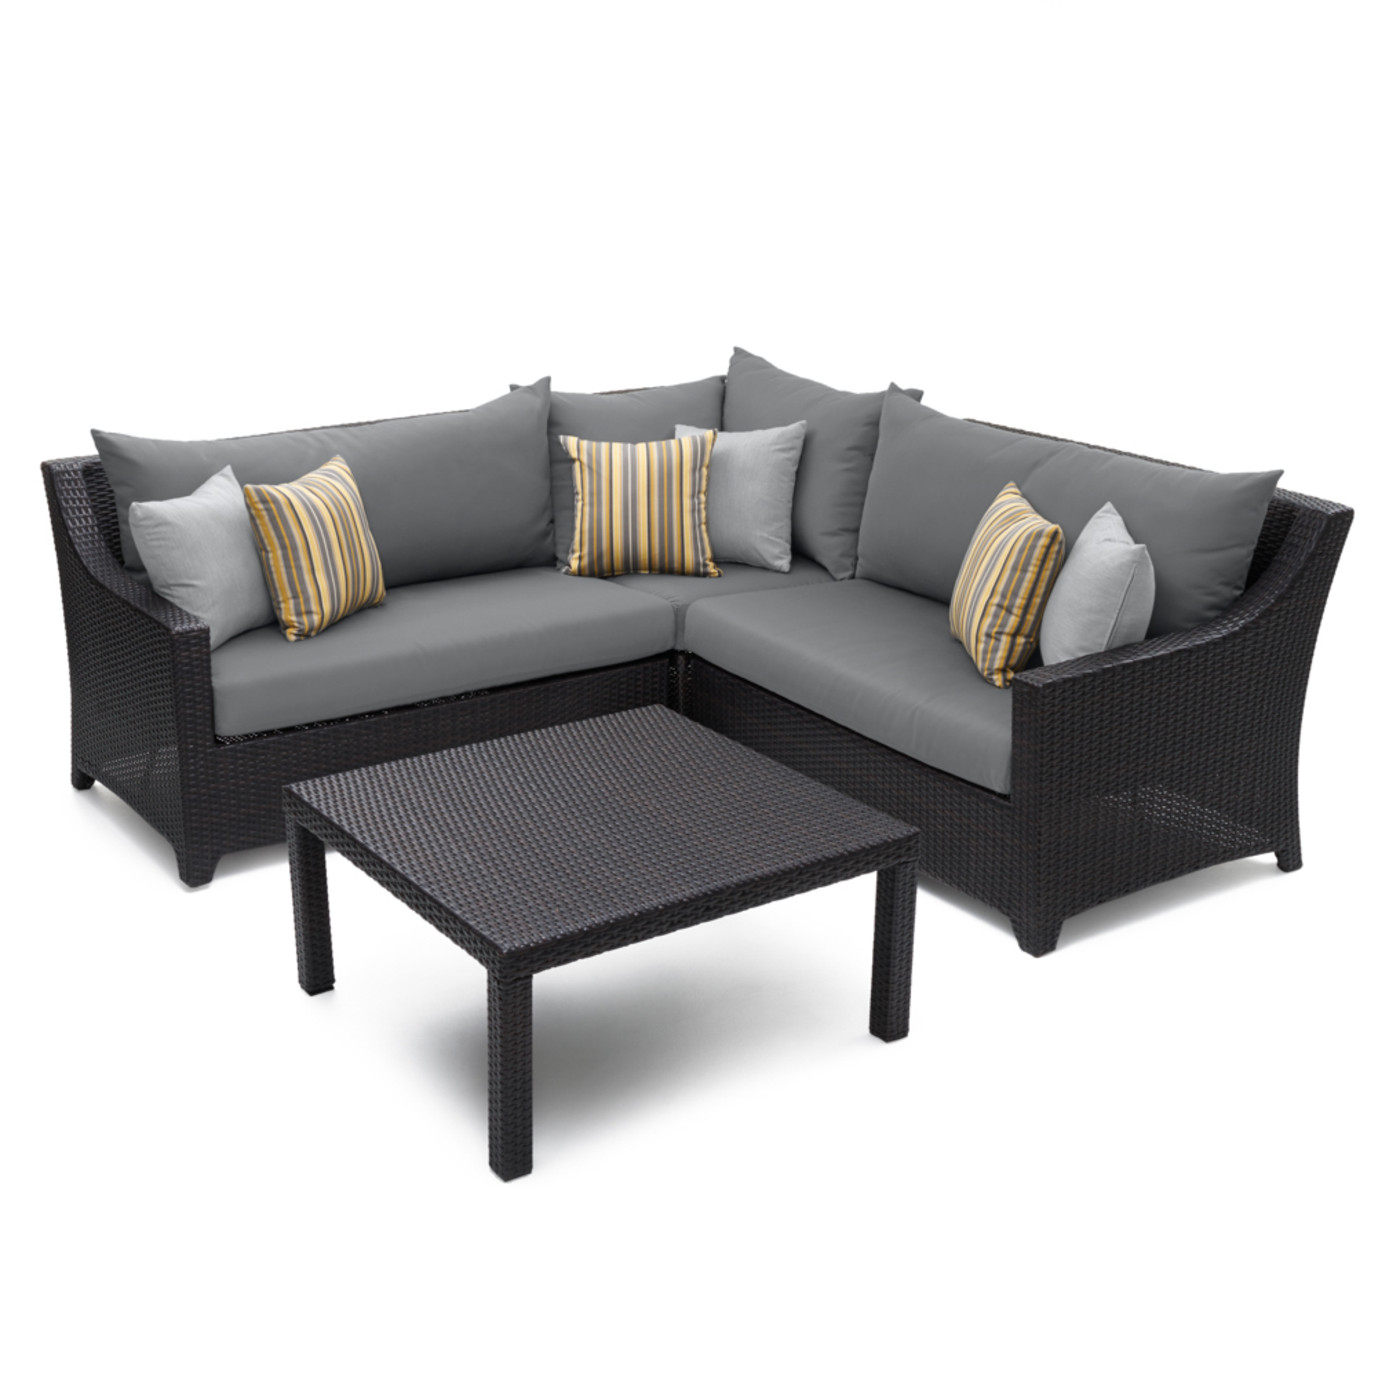 Deco™ 4pc Sectional and Table - Charcoal Grey